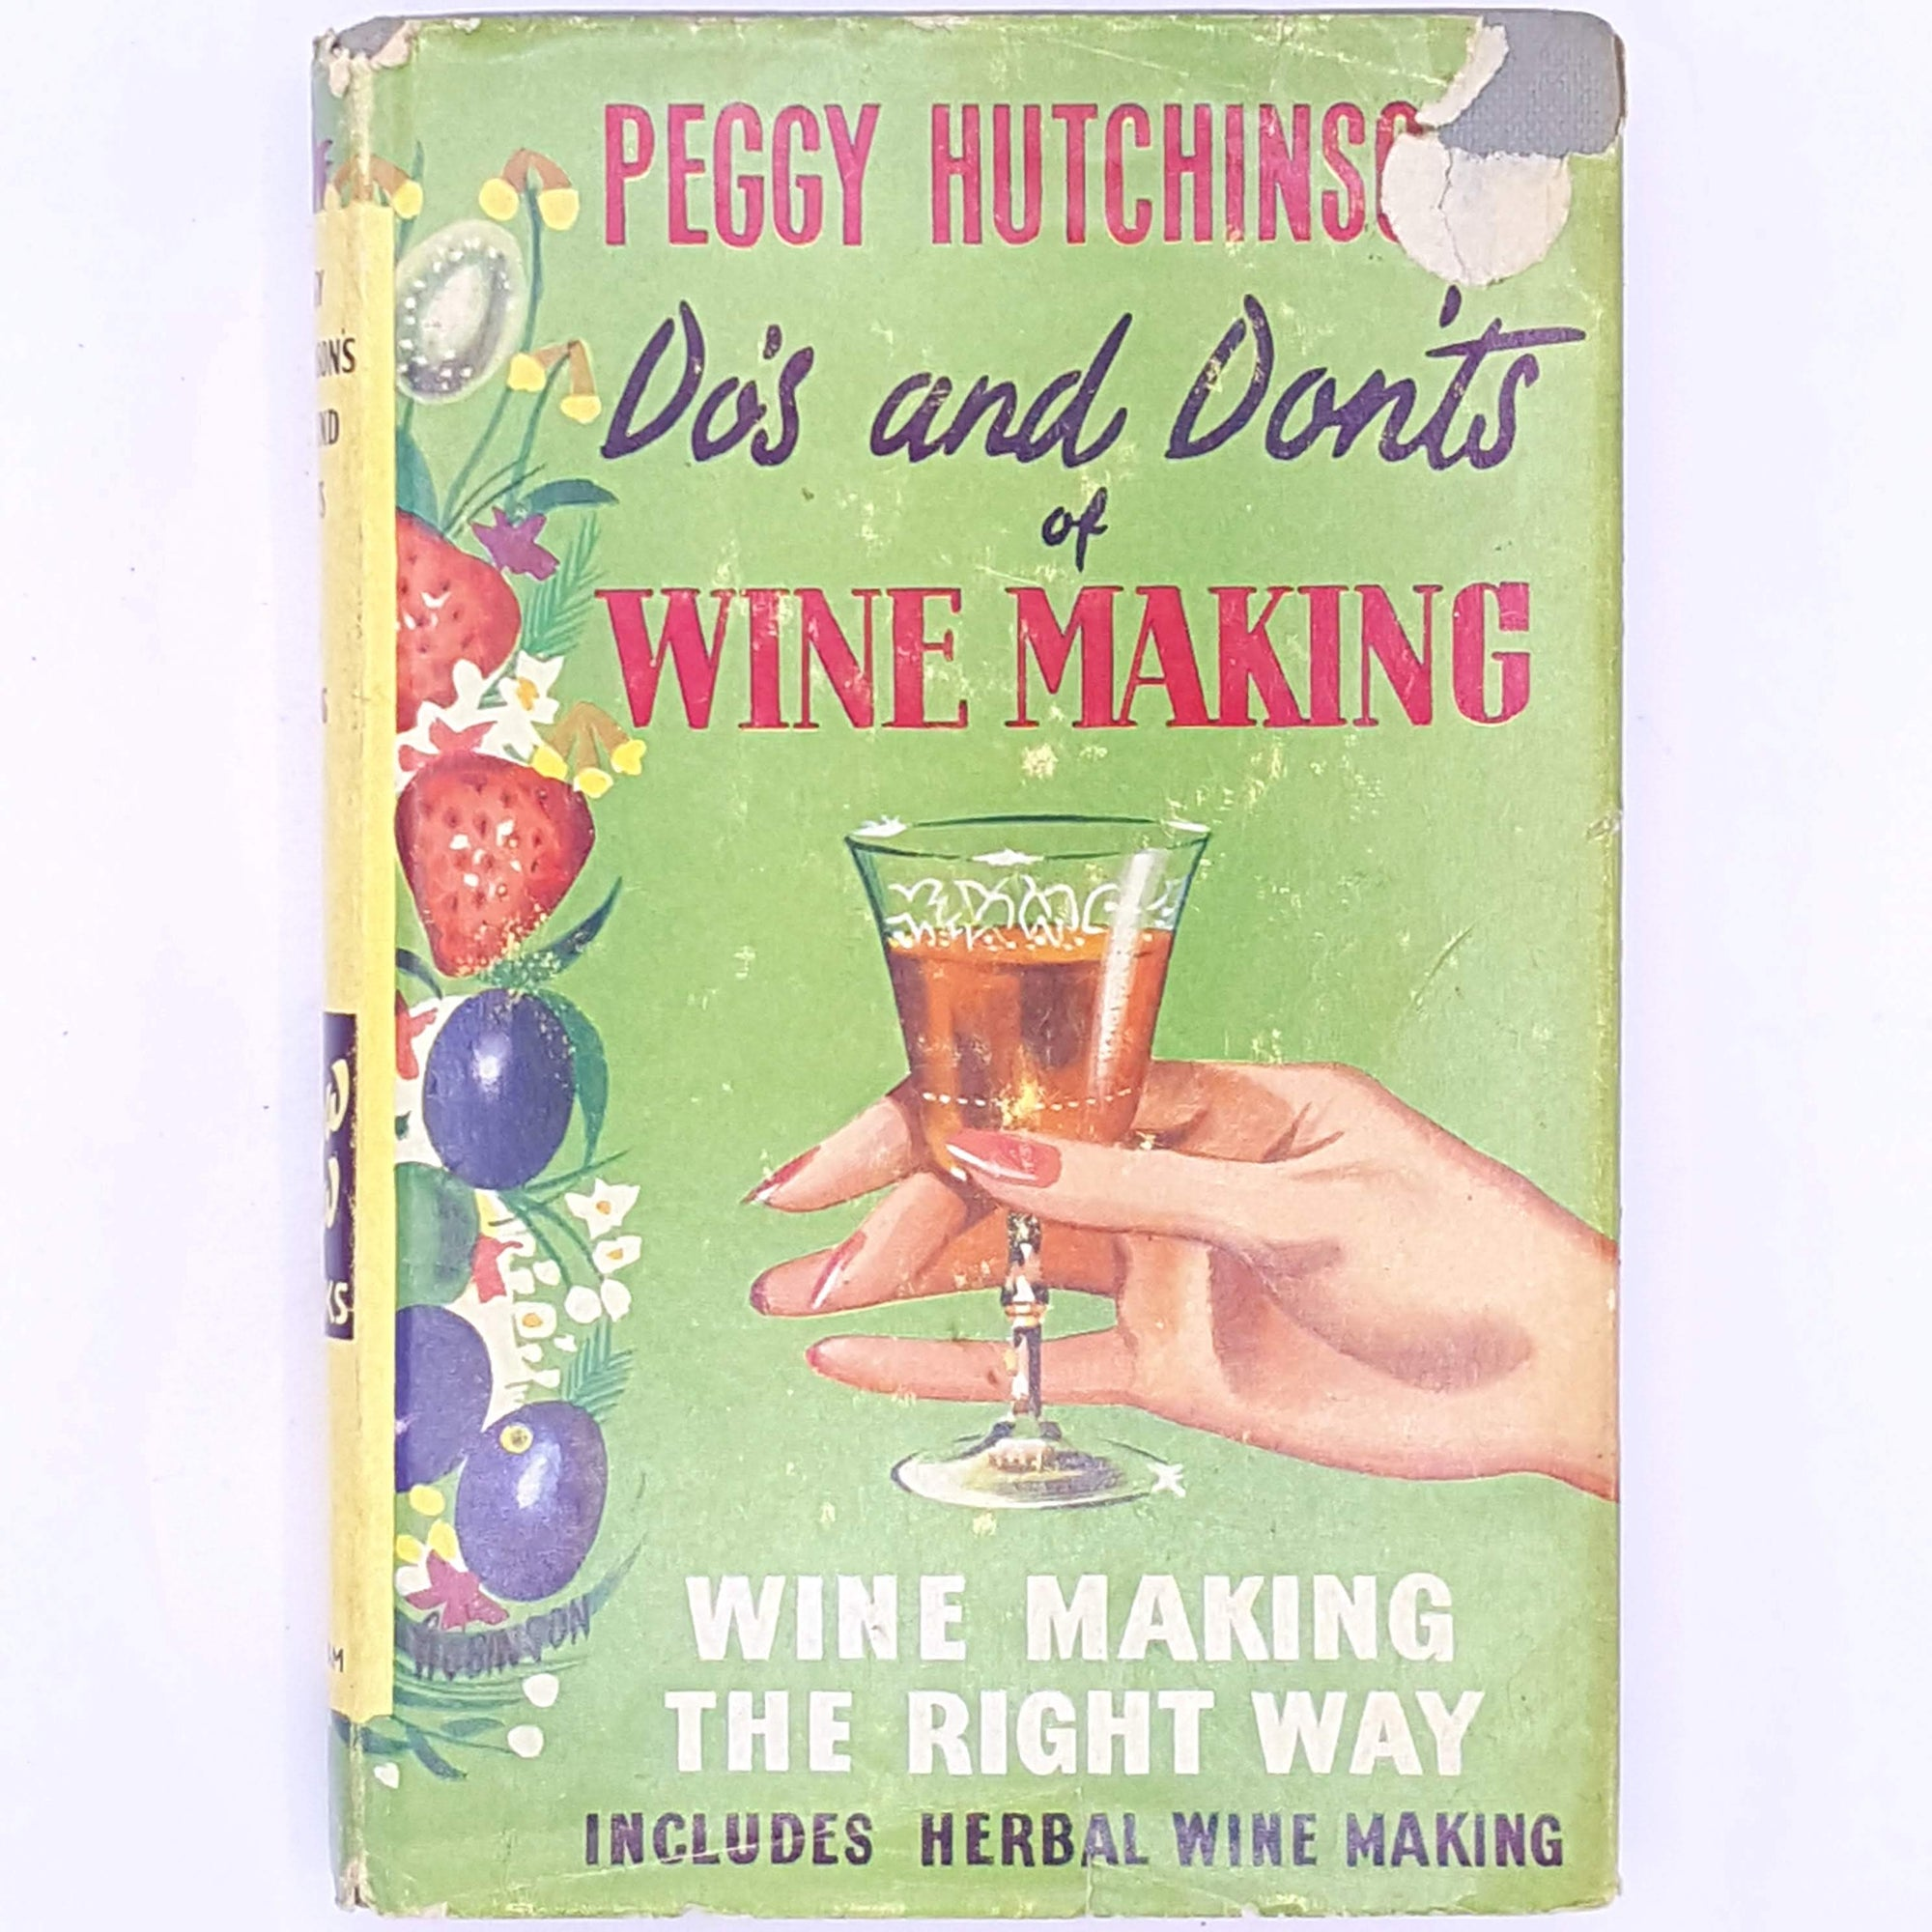 Do's and Don'ts of Wine Making, Peggy Hutchinson